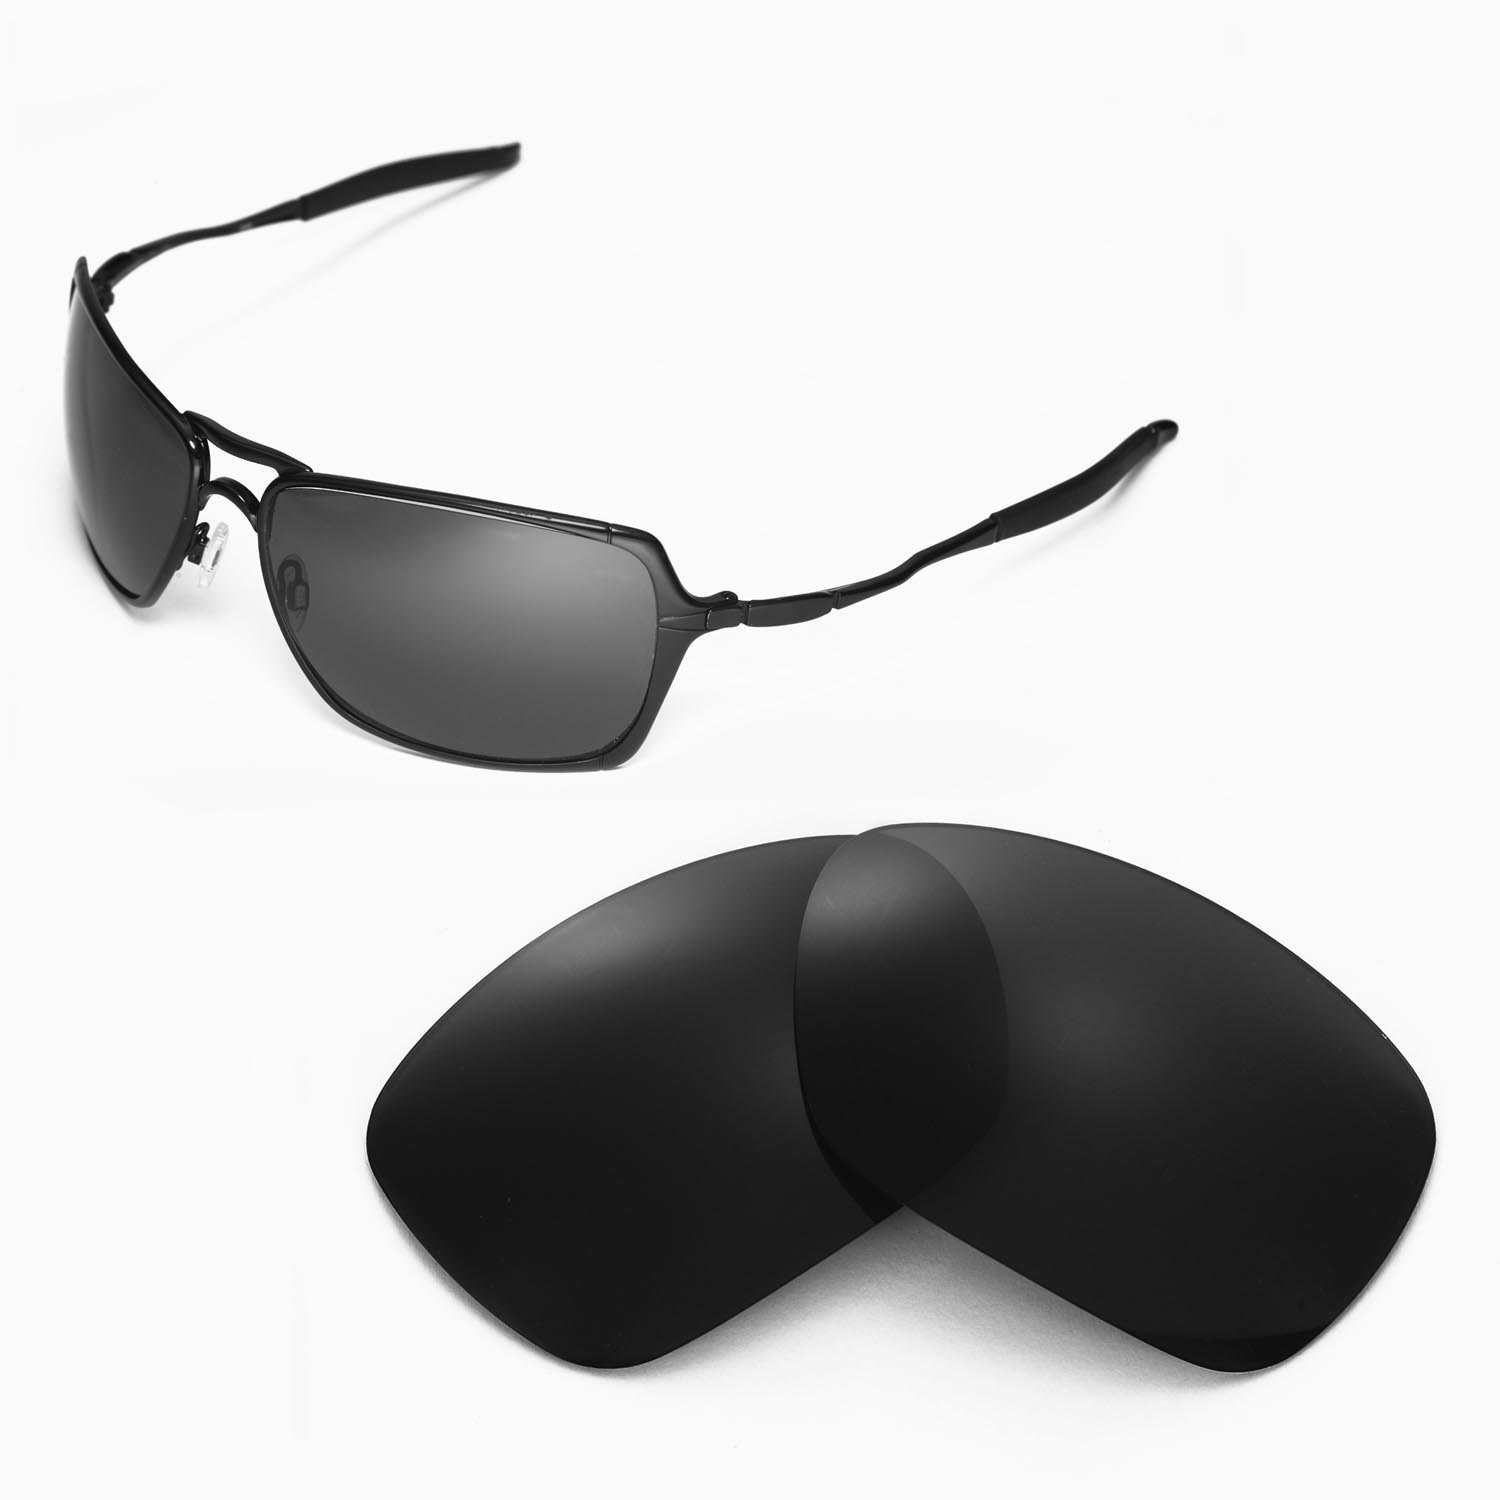 51ec2a3036 Amazon.com   Walleva Replacement Lenses for Oakley Inmate Sunglasses -  Multiple Options Available (